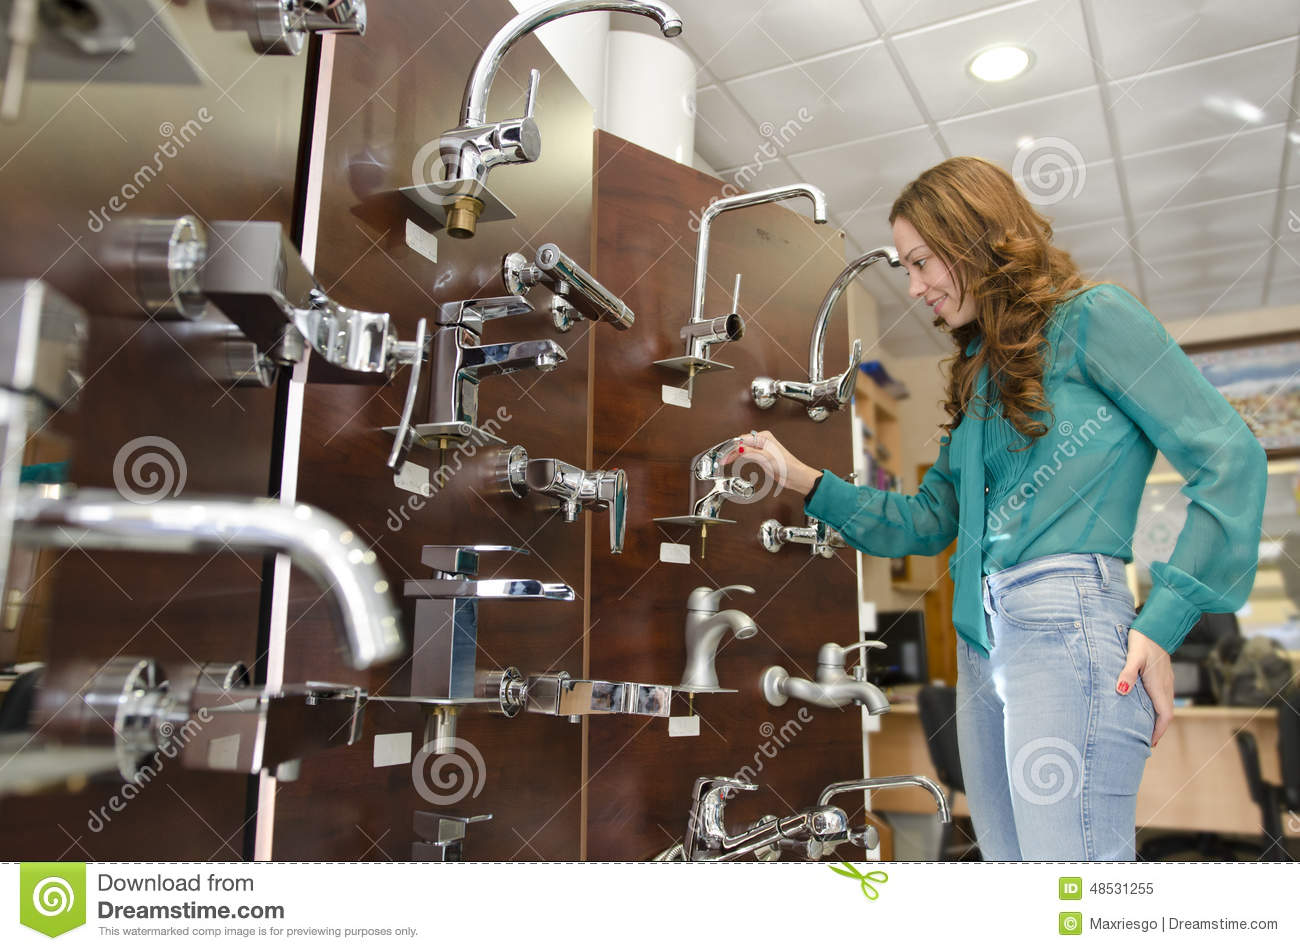 Woman At Furniture And Faucet Store Stock Image - Image of business ...